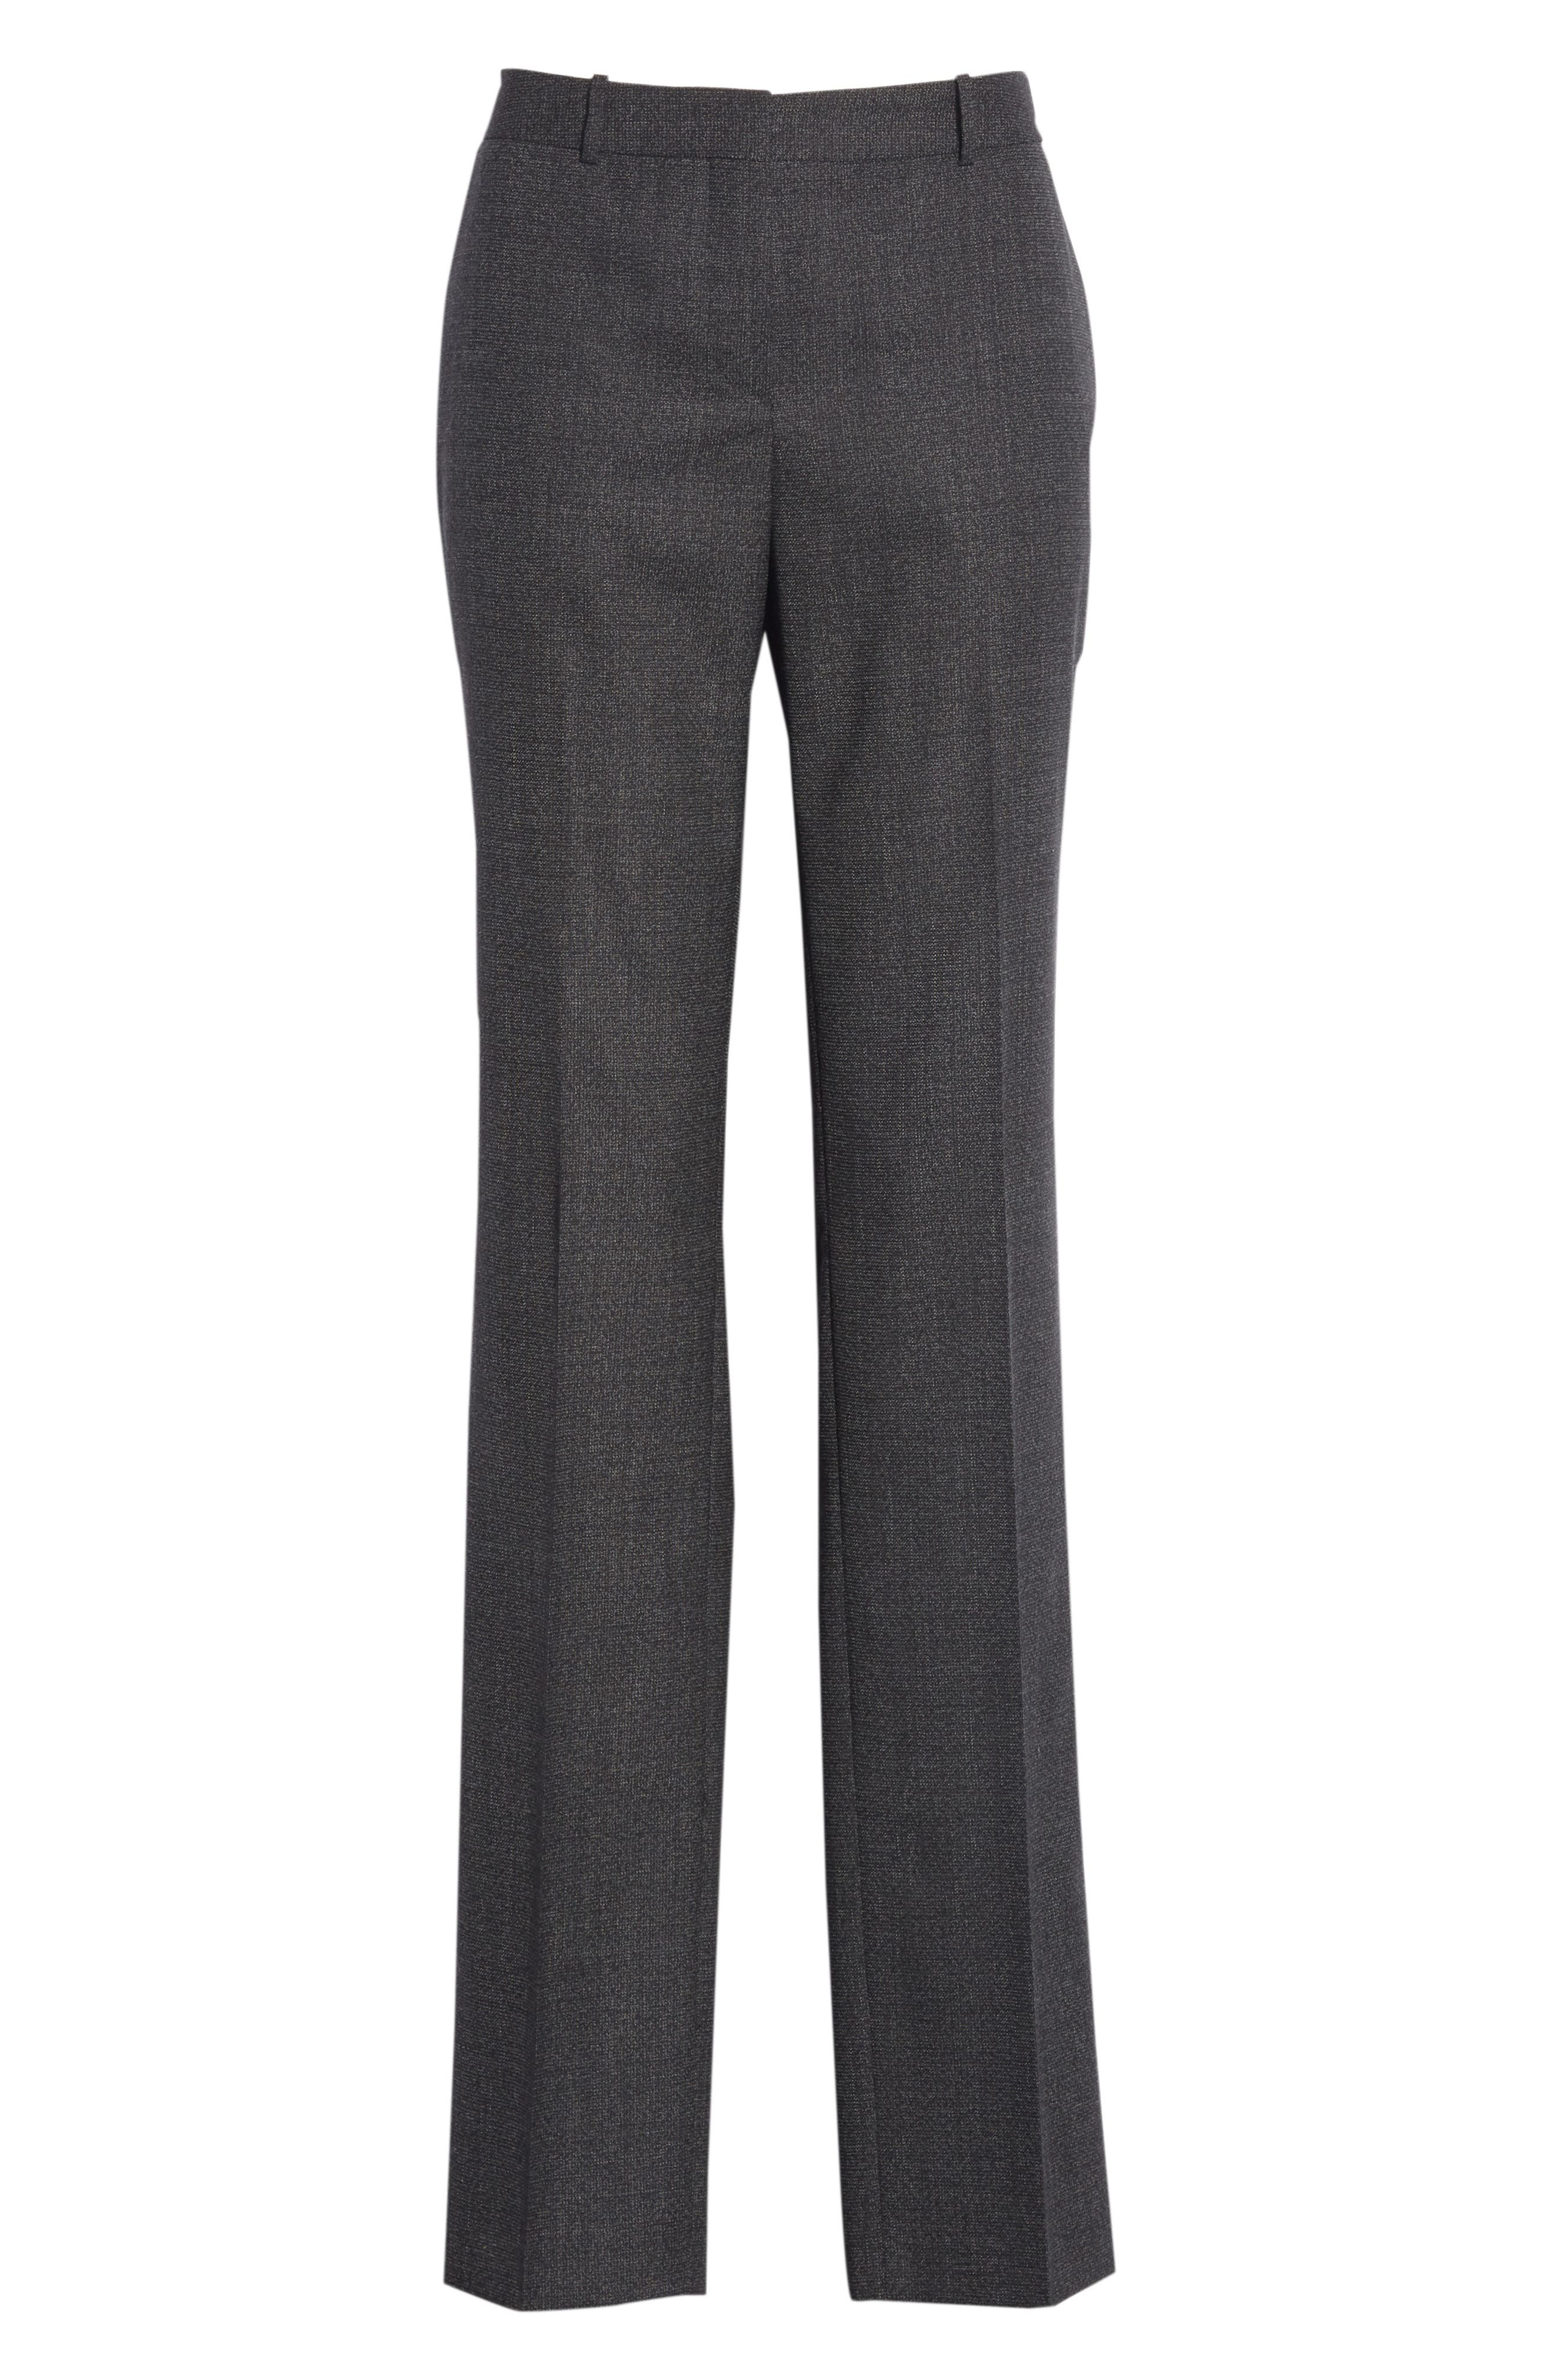 Tamea Tropical Stretch Wool Trousers,                             Alternate thumbnail 6, color,                             Black Fantasy